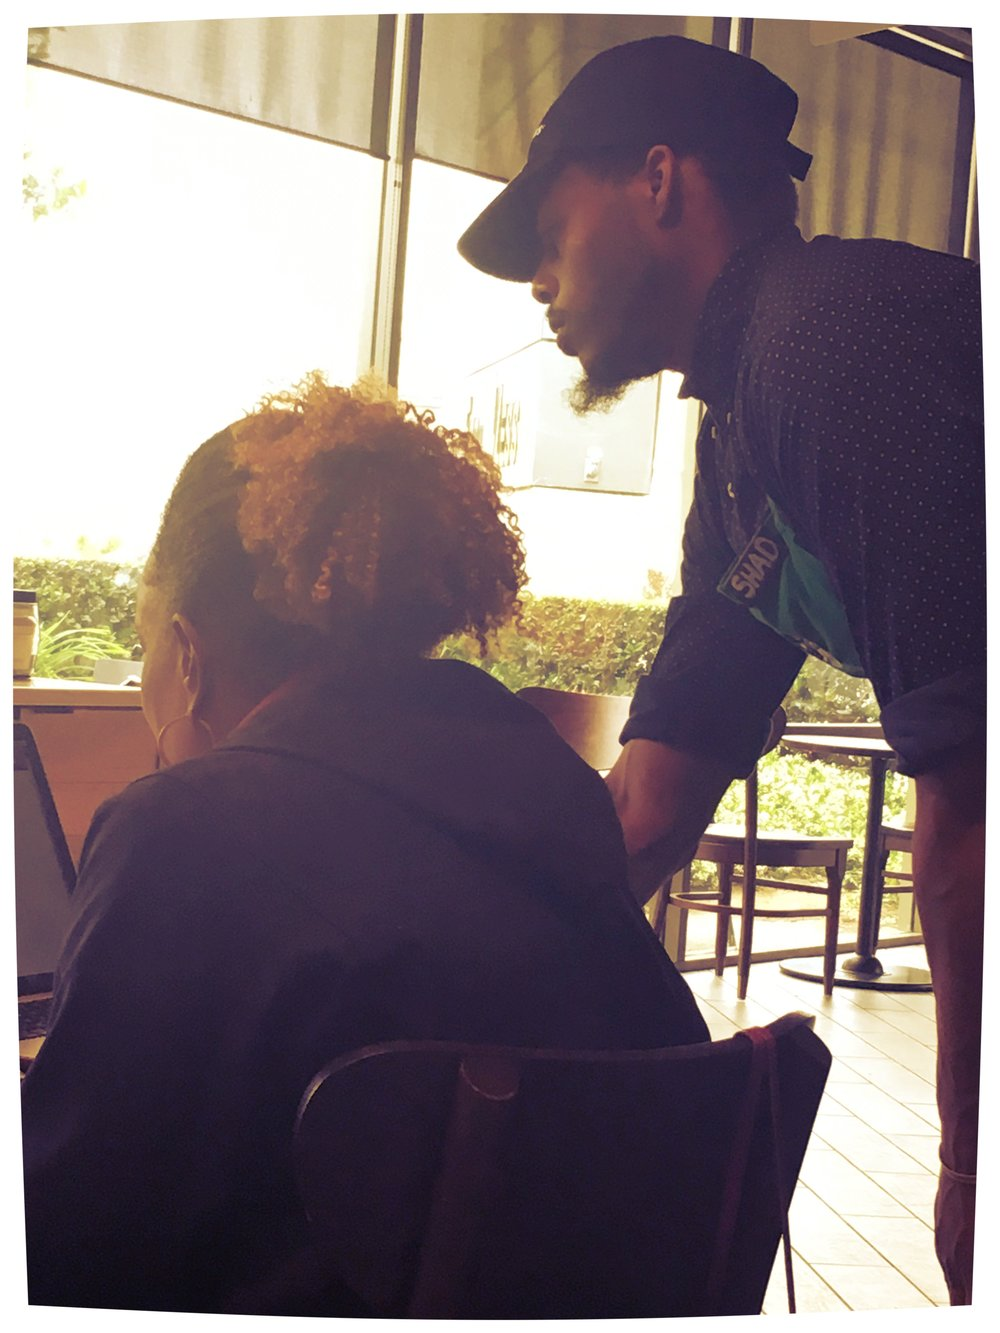 A barista at my local Starbucks helping a customer connect to her wi-fi